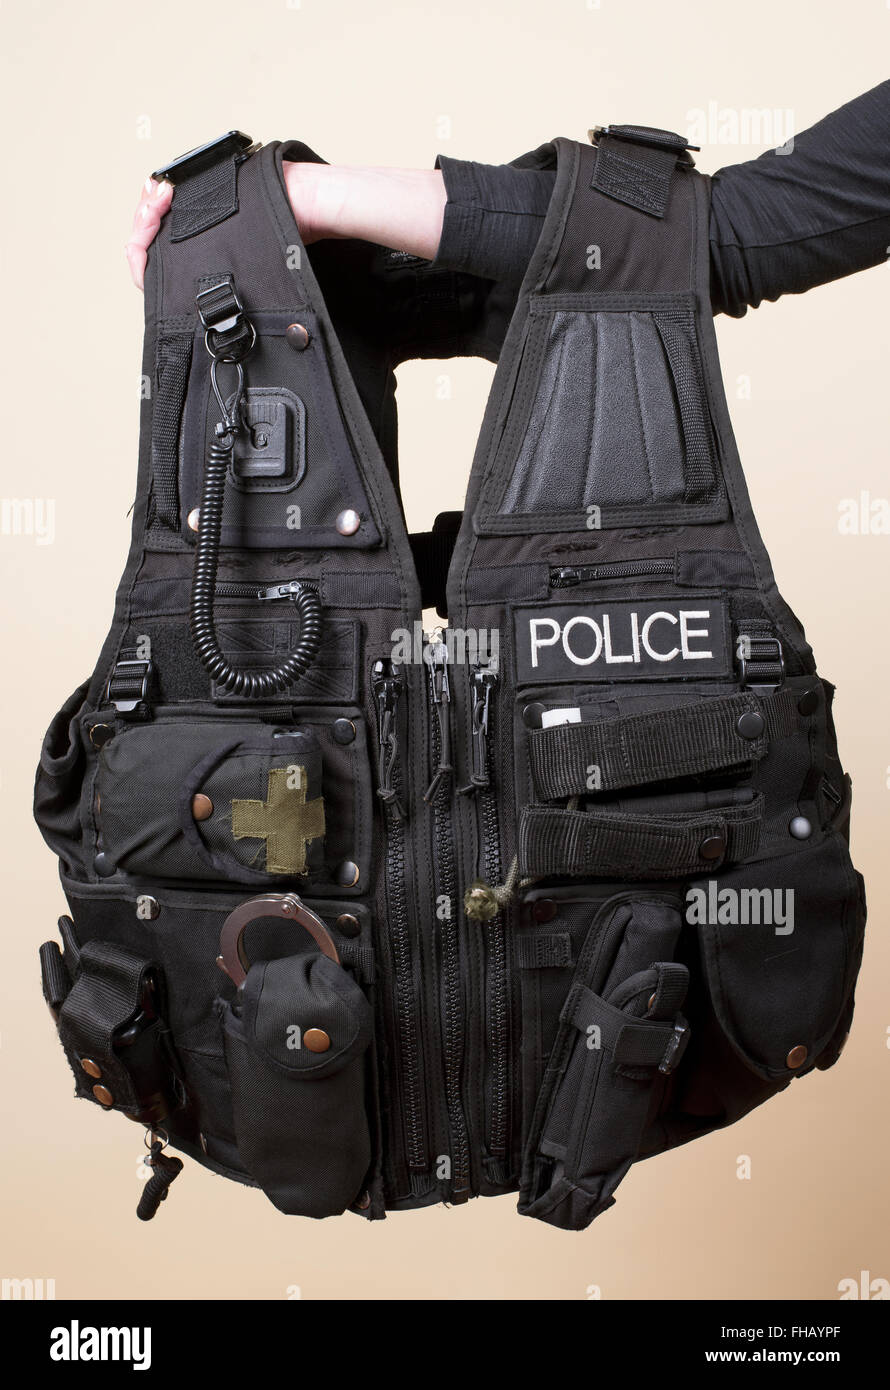 Police tactical vest - Stock Image